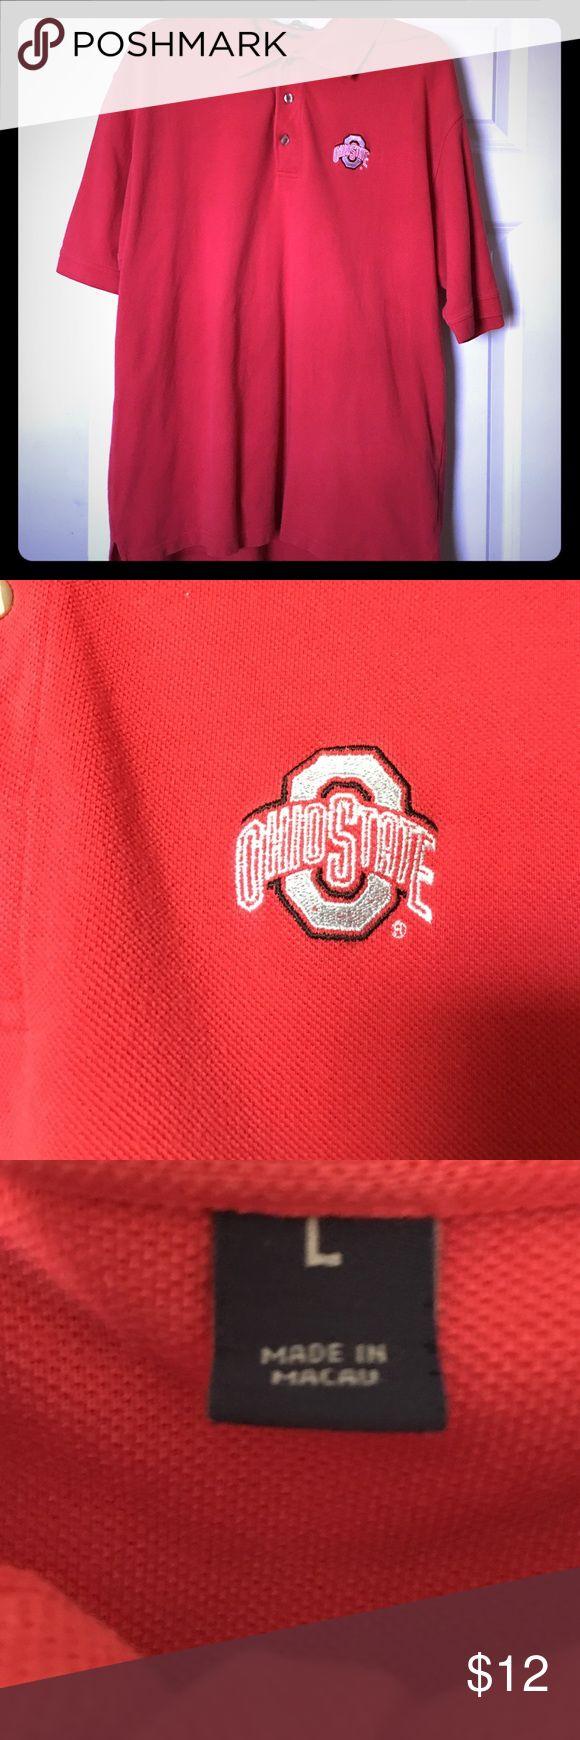 Ohio State Polo Size L SALE SEE BELOW Red OSU Polo, no damage, good condition. BUNDLE AND SAVE 2 for $15 MEN'S SHORTS AND SHIRTS MIX AND MATCH!! JUST BUNDLE AND SEND OVER AN OFFER FOR $15 Shirts Polos